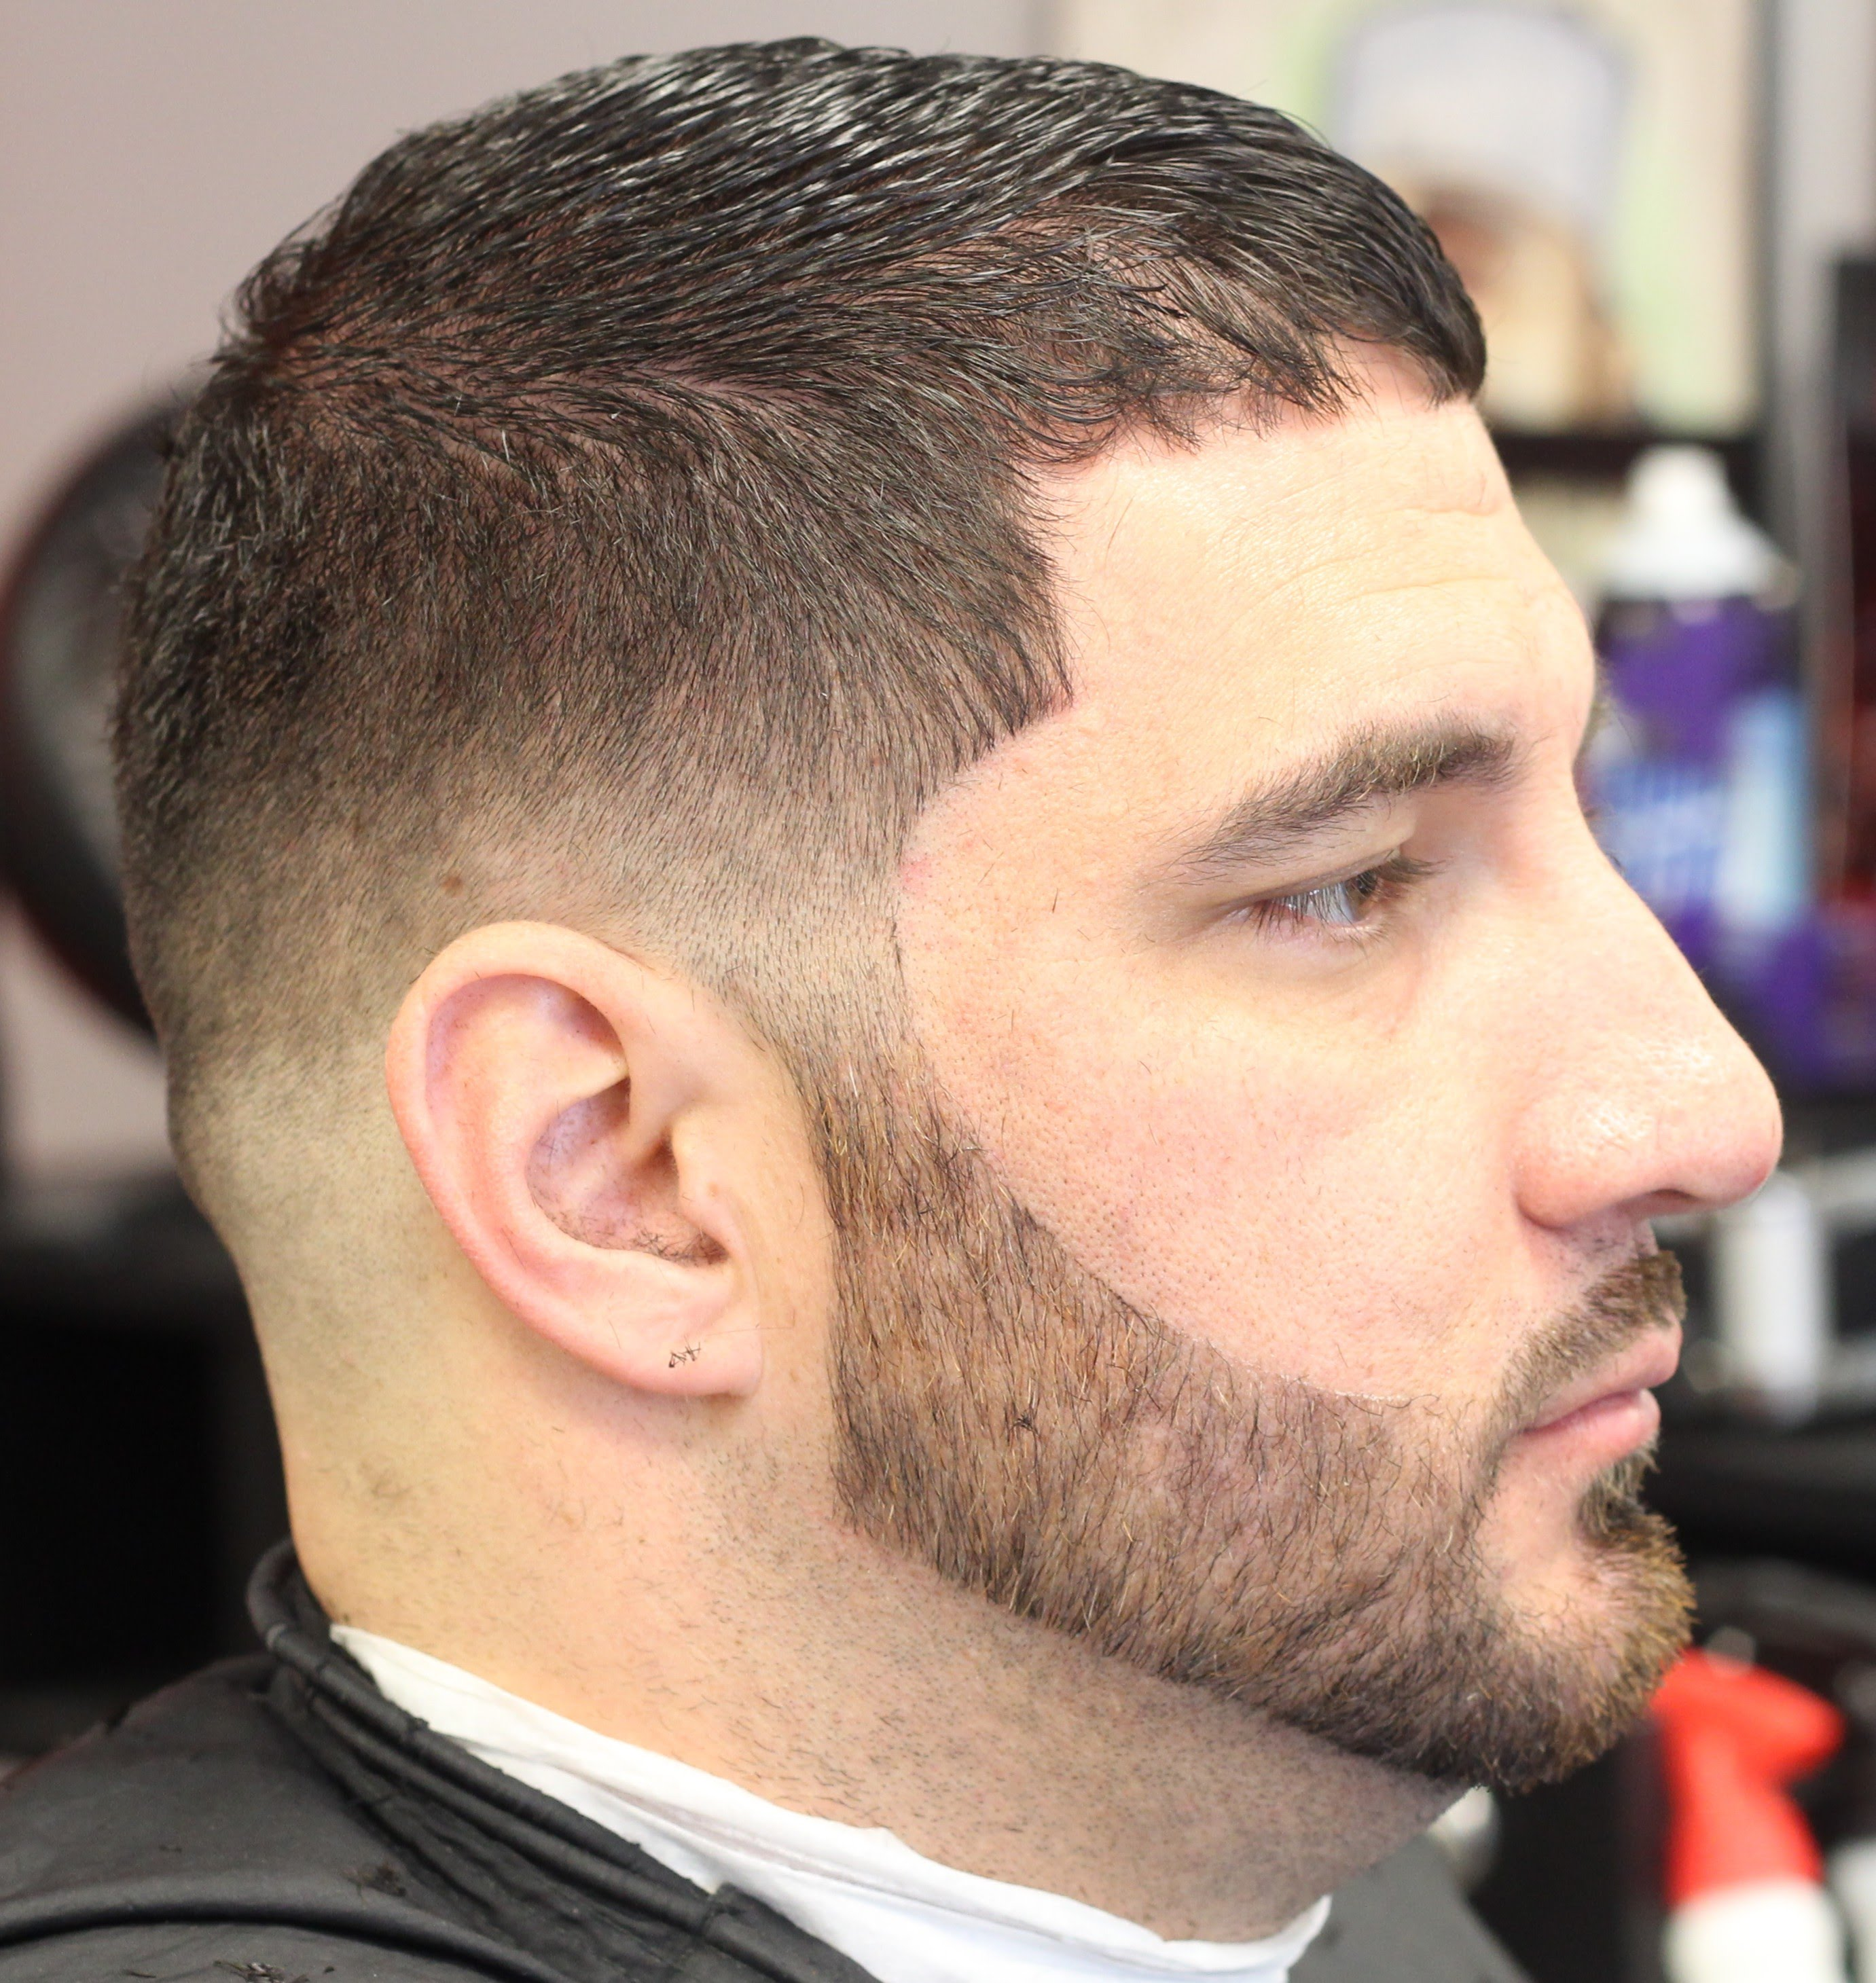 Bald Fade | Men's Taper Fade Haircut | Fades Haircuts